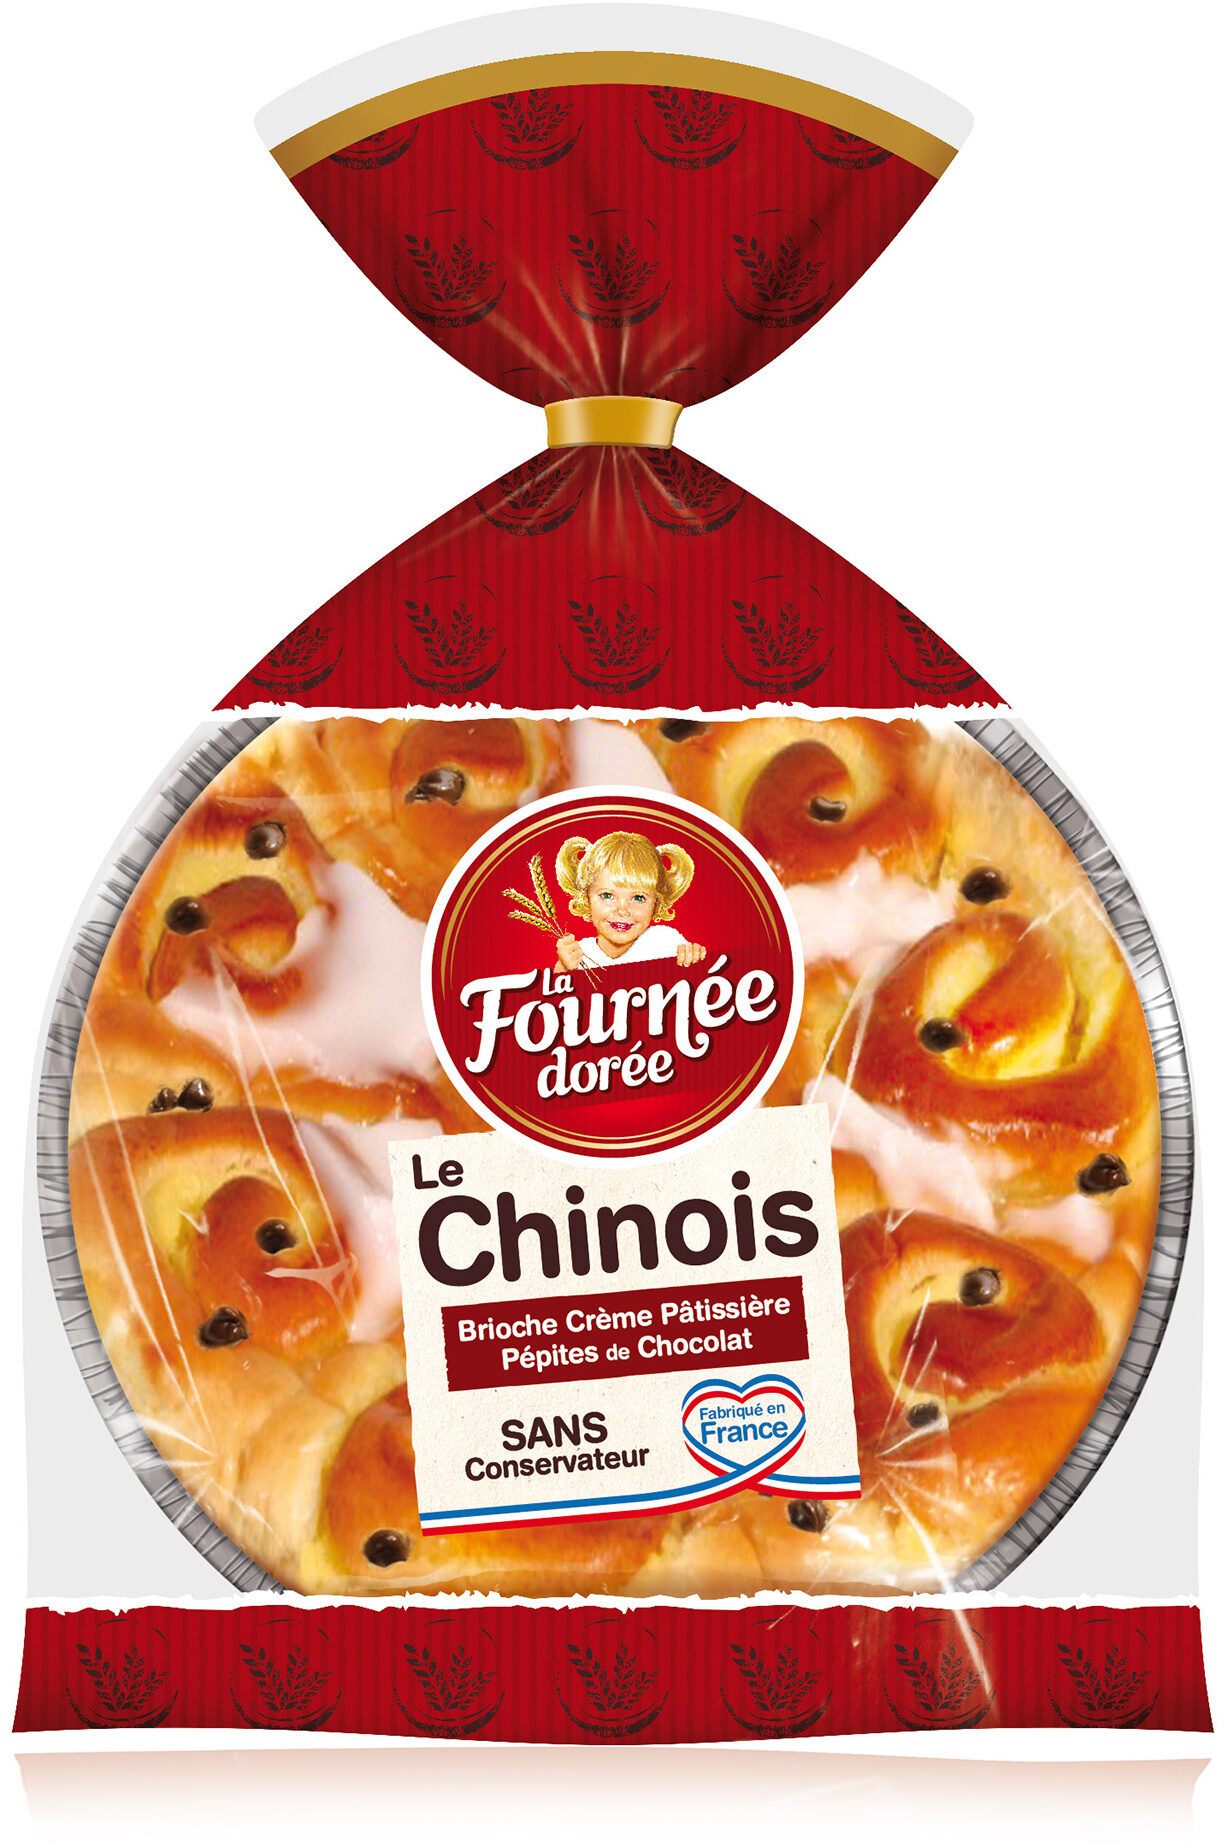 Le Chinois - Product - fr